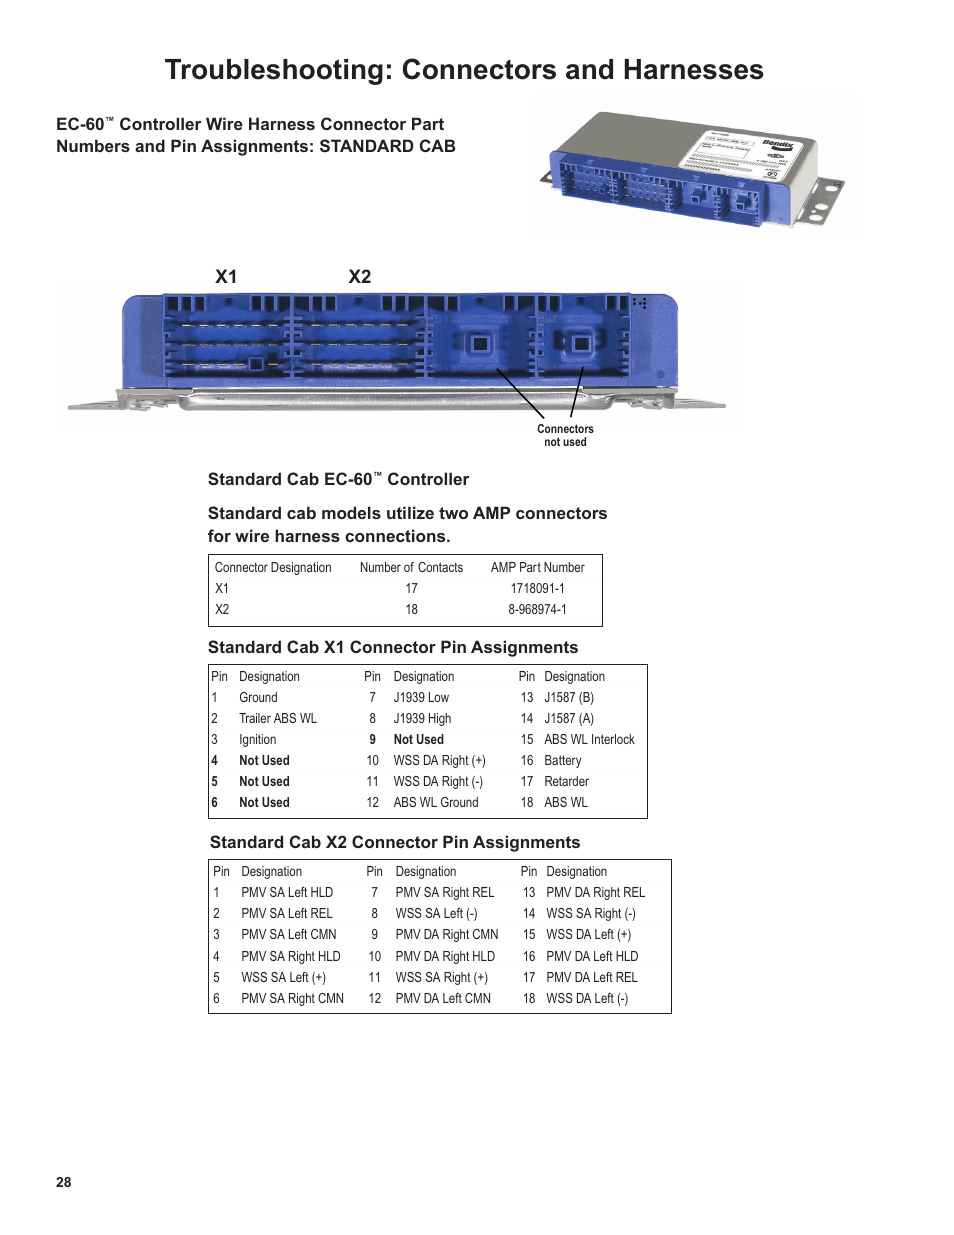 medium resolution of troubleshooting connectors and harnesses x1 x2 bendix commercial vehicle systems ec 60 atc std prem controllers user manual page 28 44